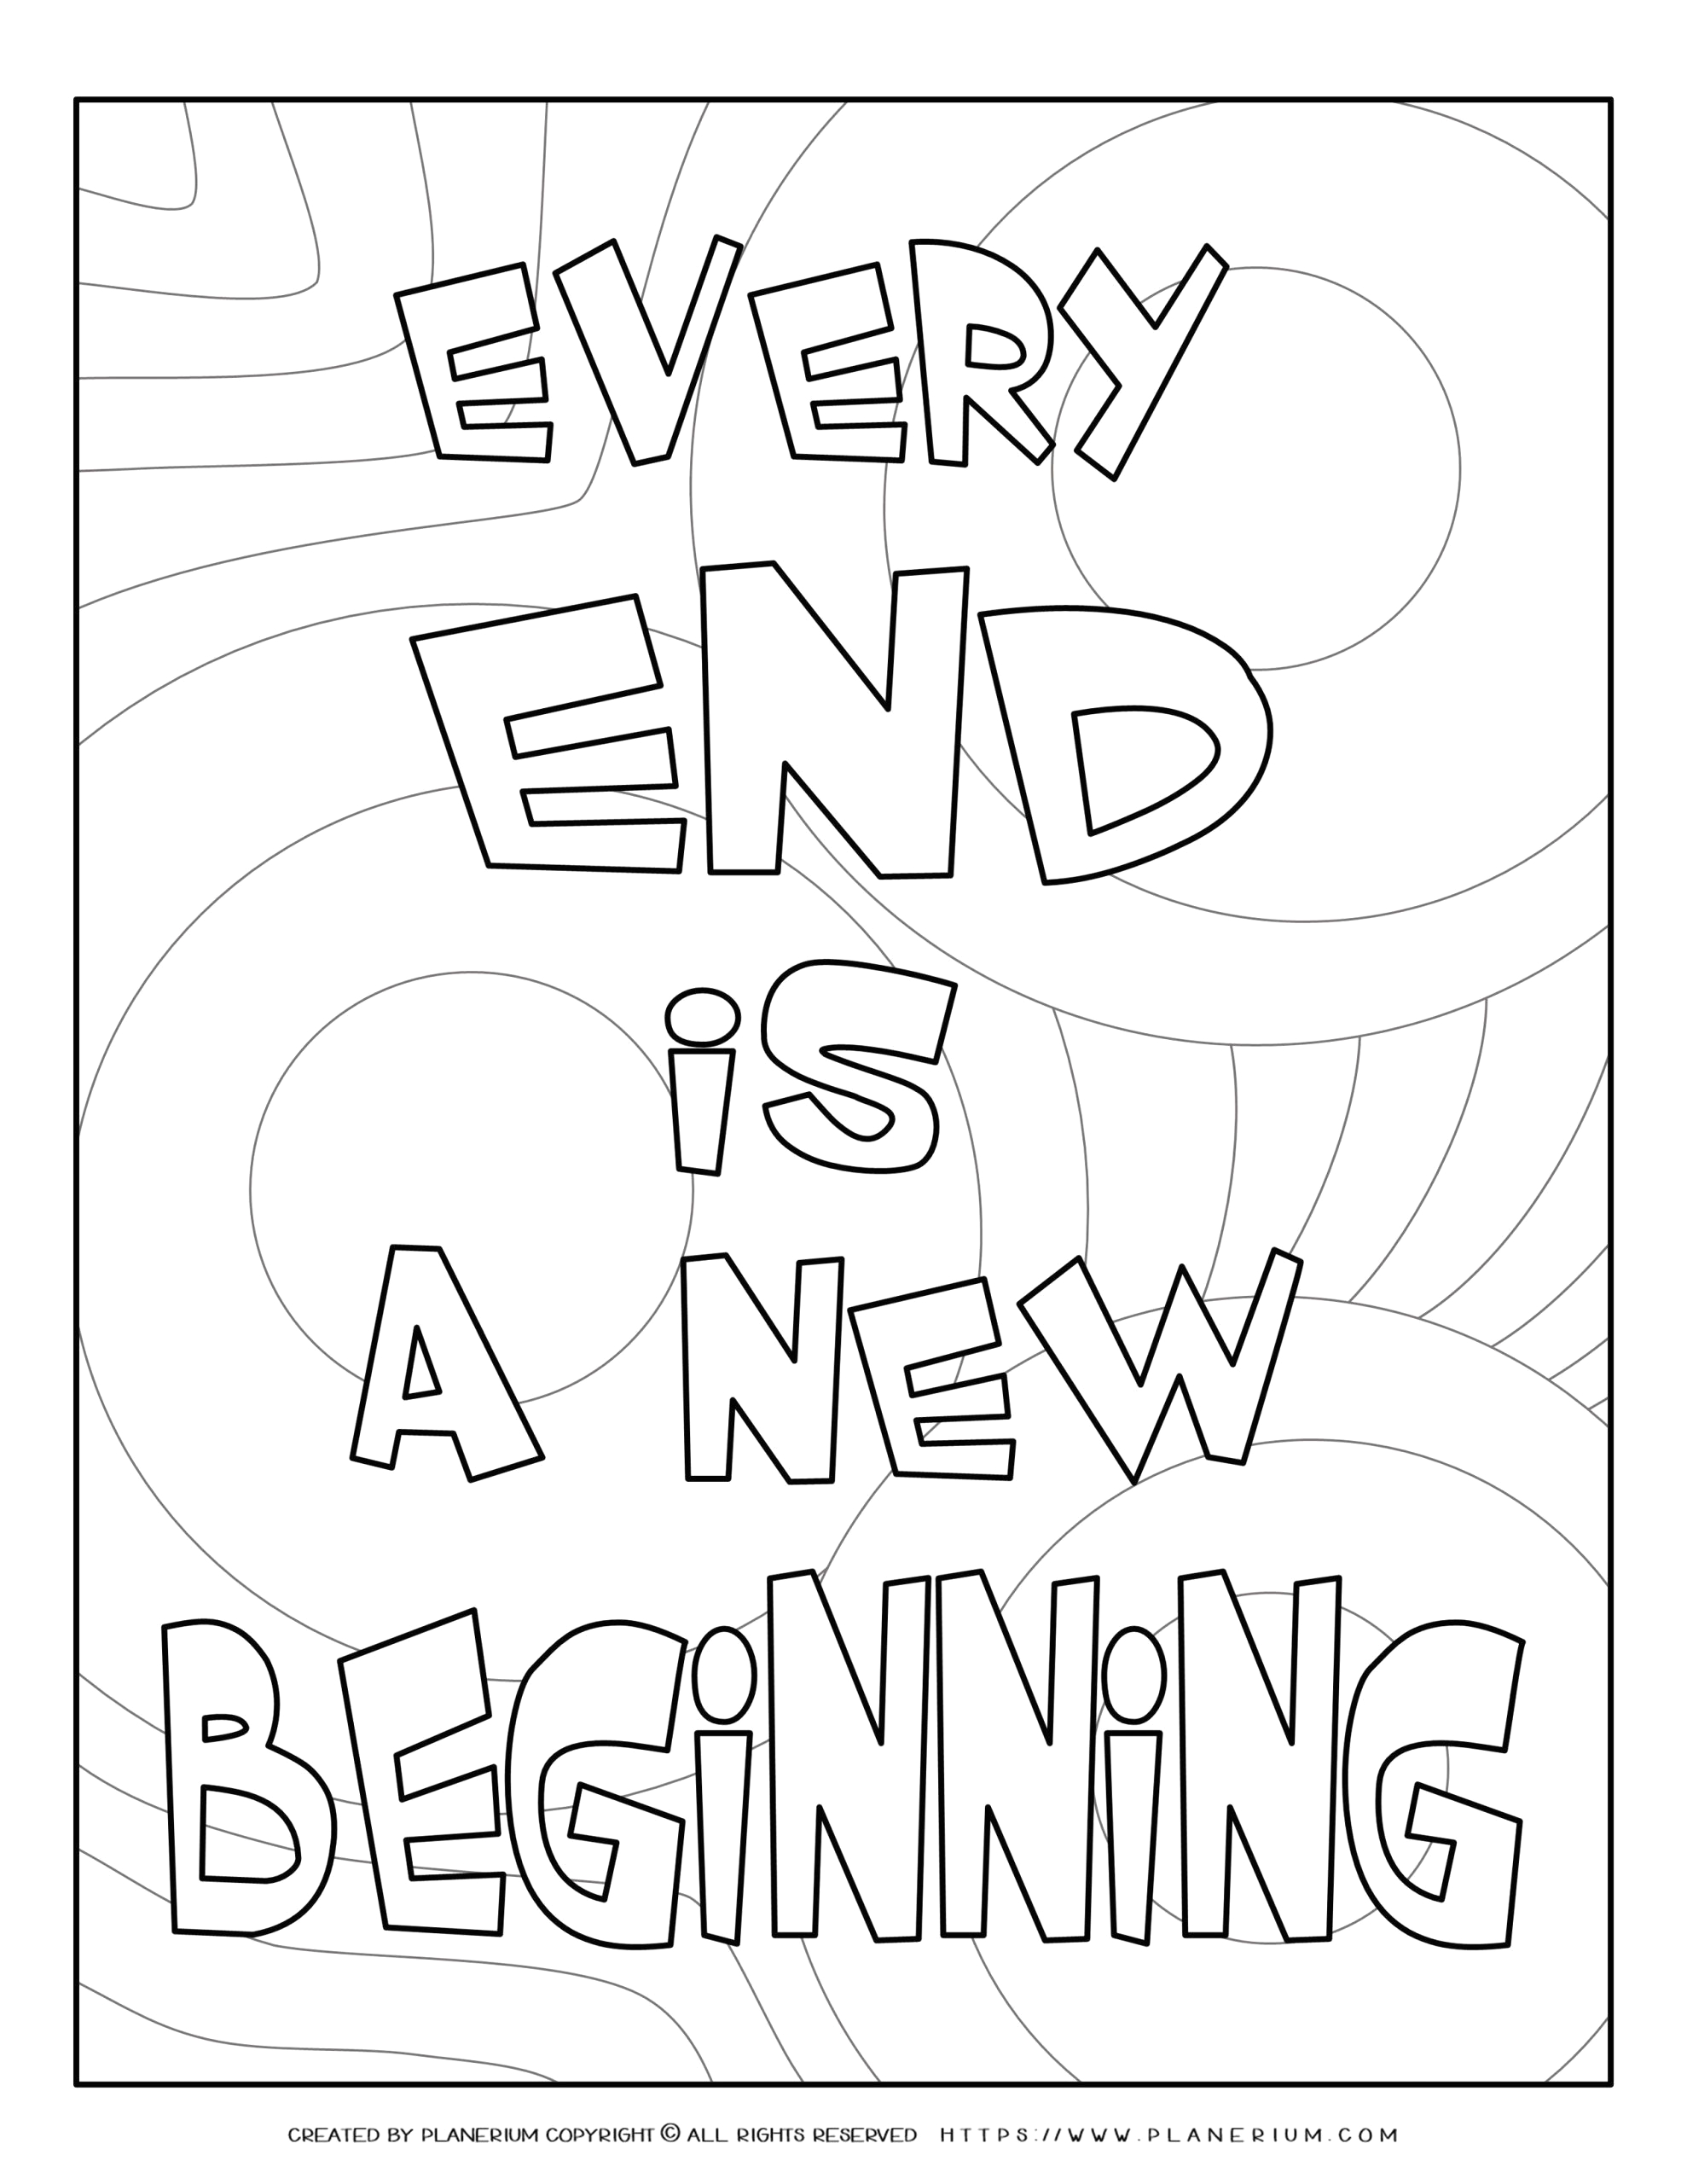 End Of School Year Coloring Pages Free End Of Year Coloring Every End is A New Beginning